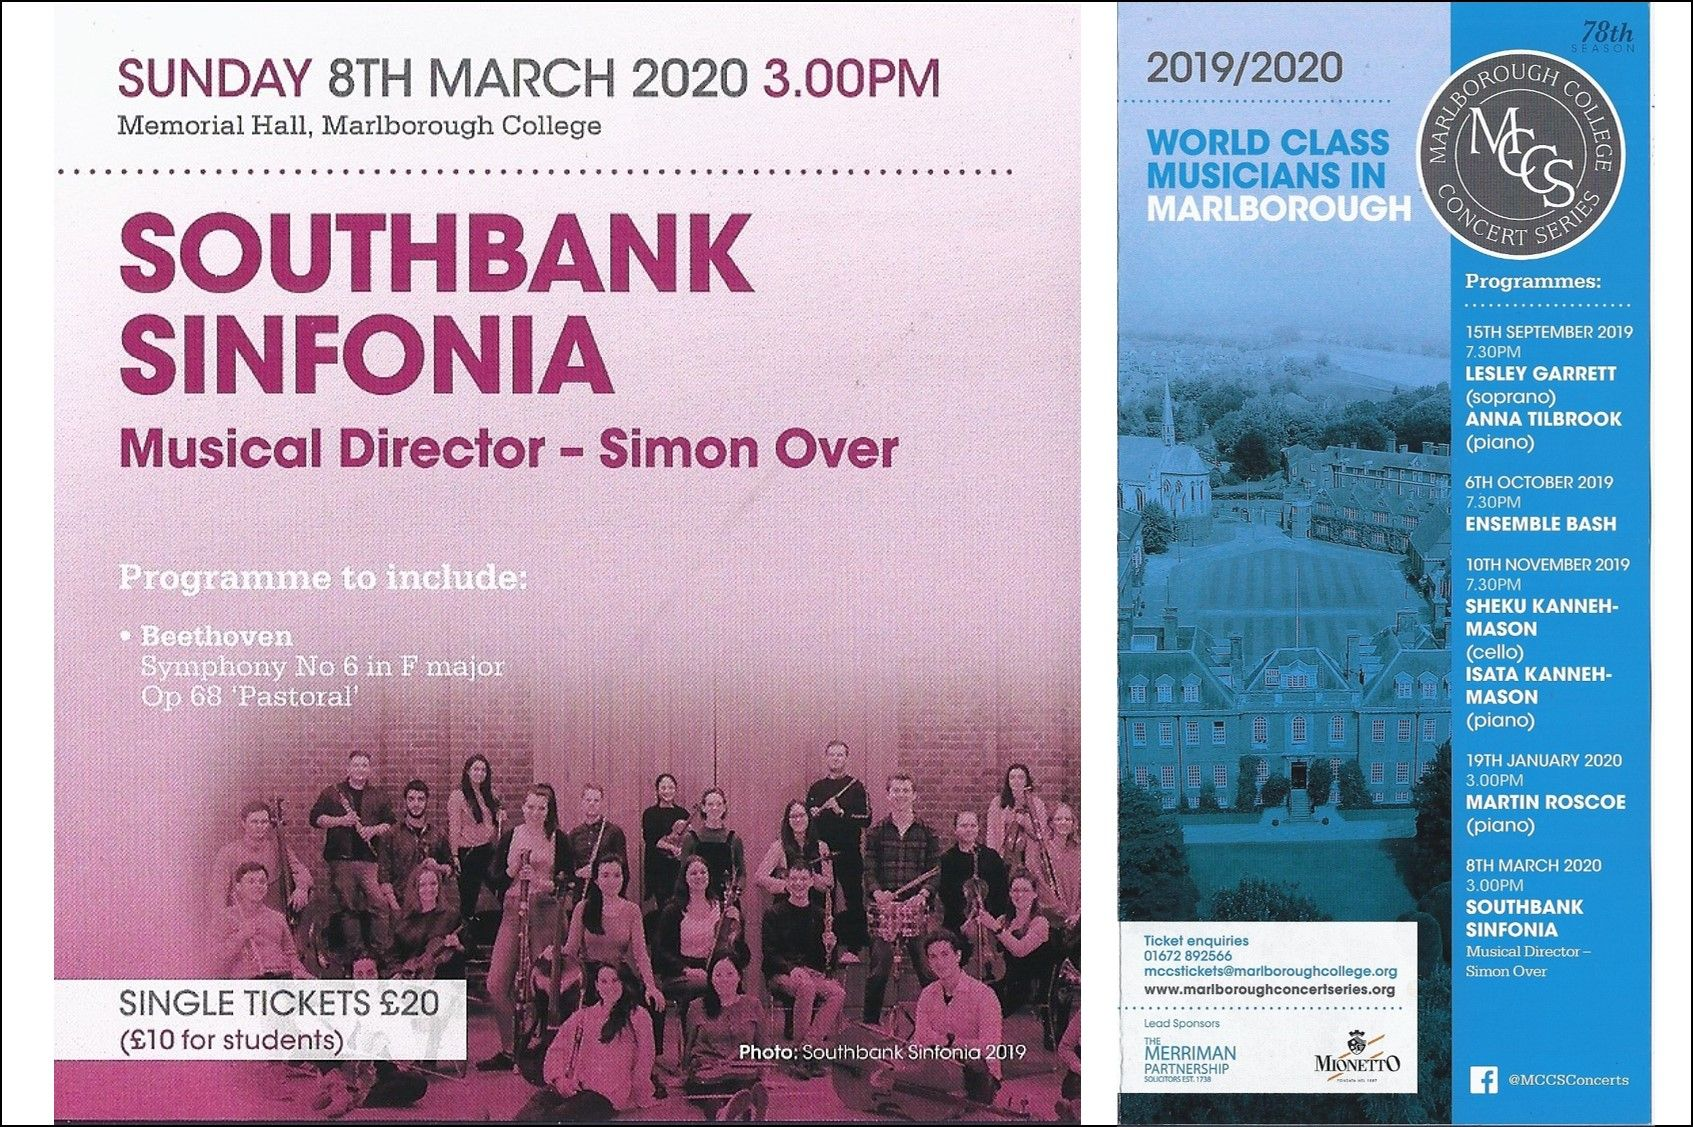 8 March - Southbank Sinfonia